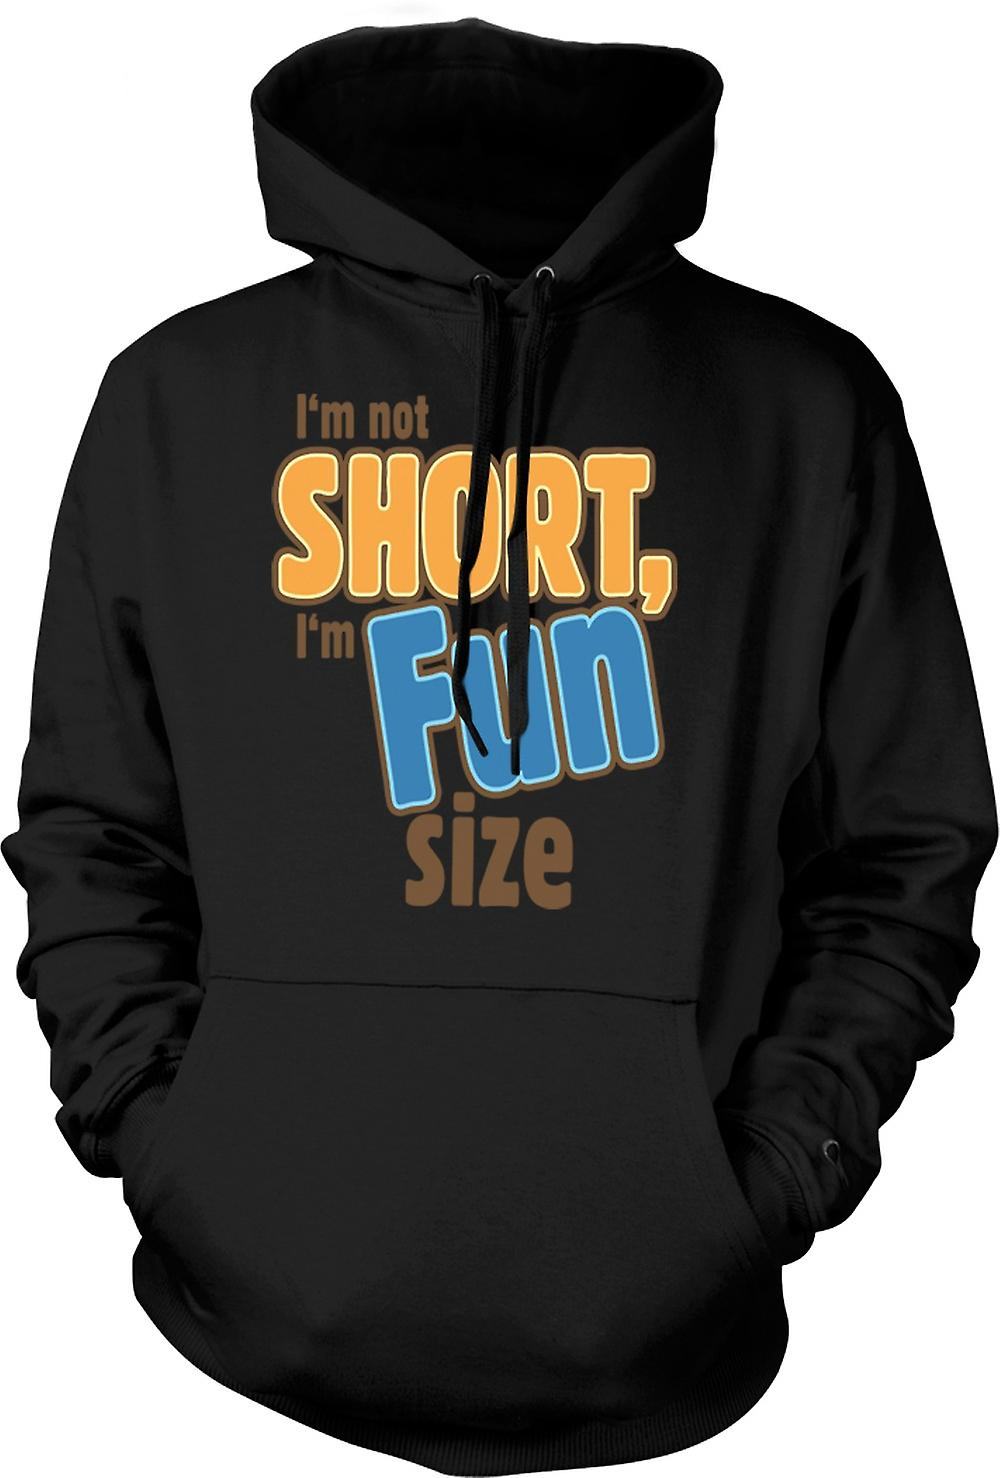 Mens Hoodie - I'm Not Short, I'm Fun Size - Funny